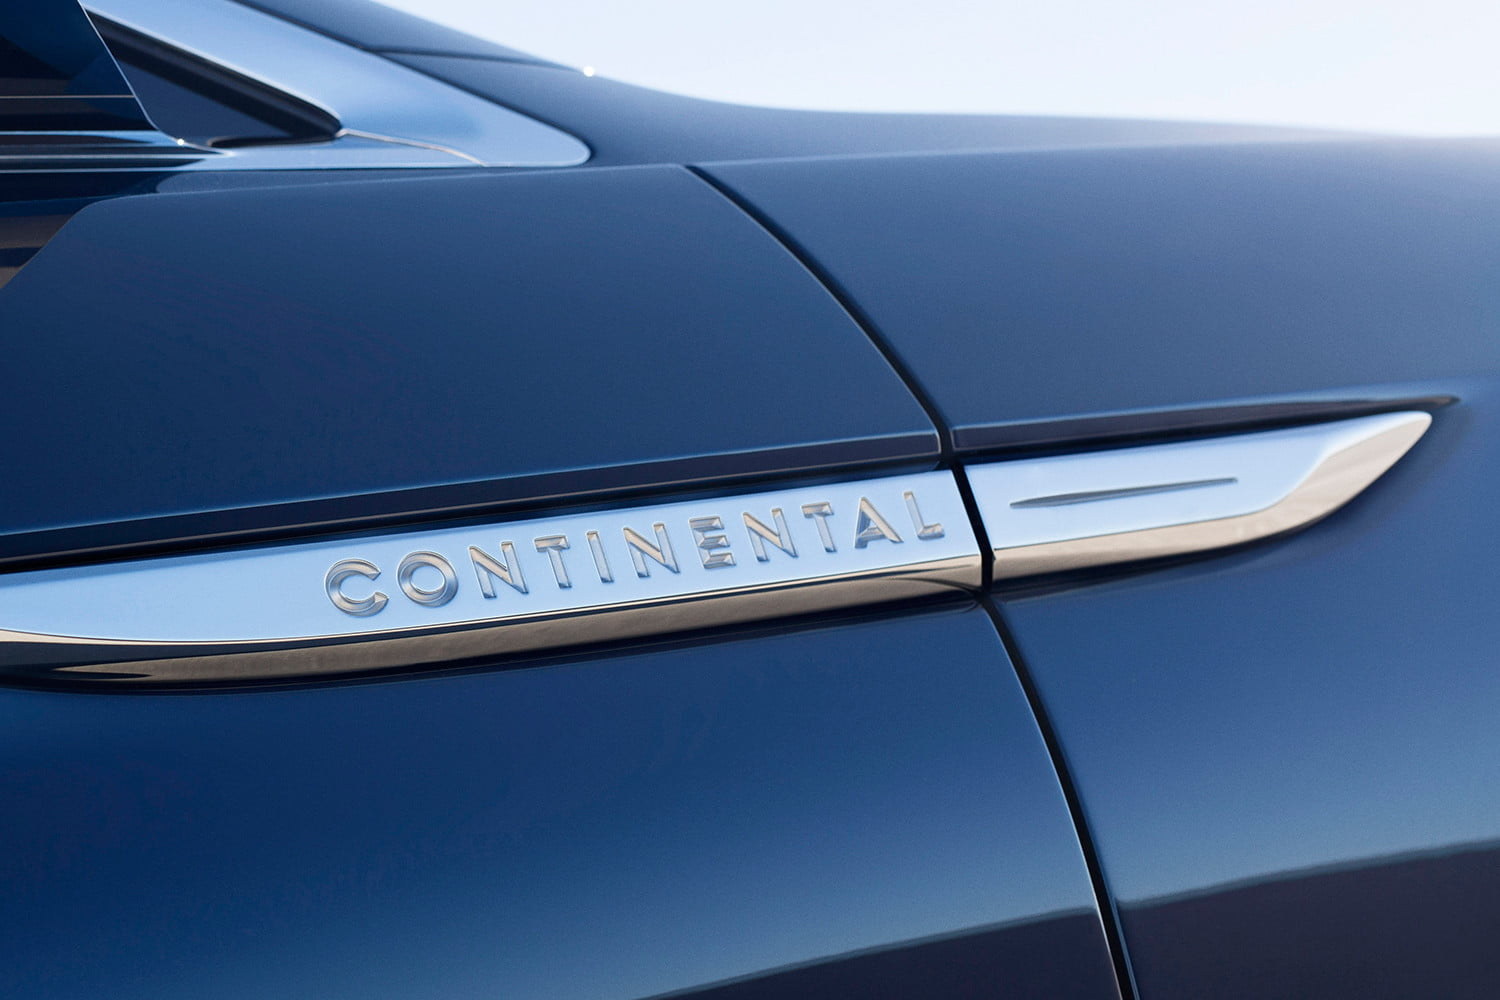 top 5 concept cars of 2015 opinion pictures specs lincolncontinentalconcept 10 detail badgeb